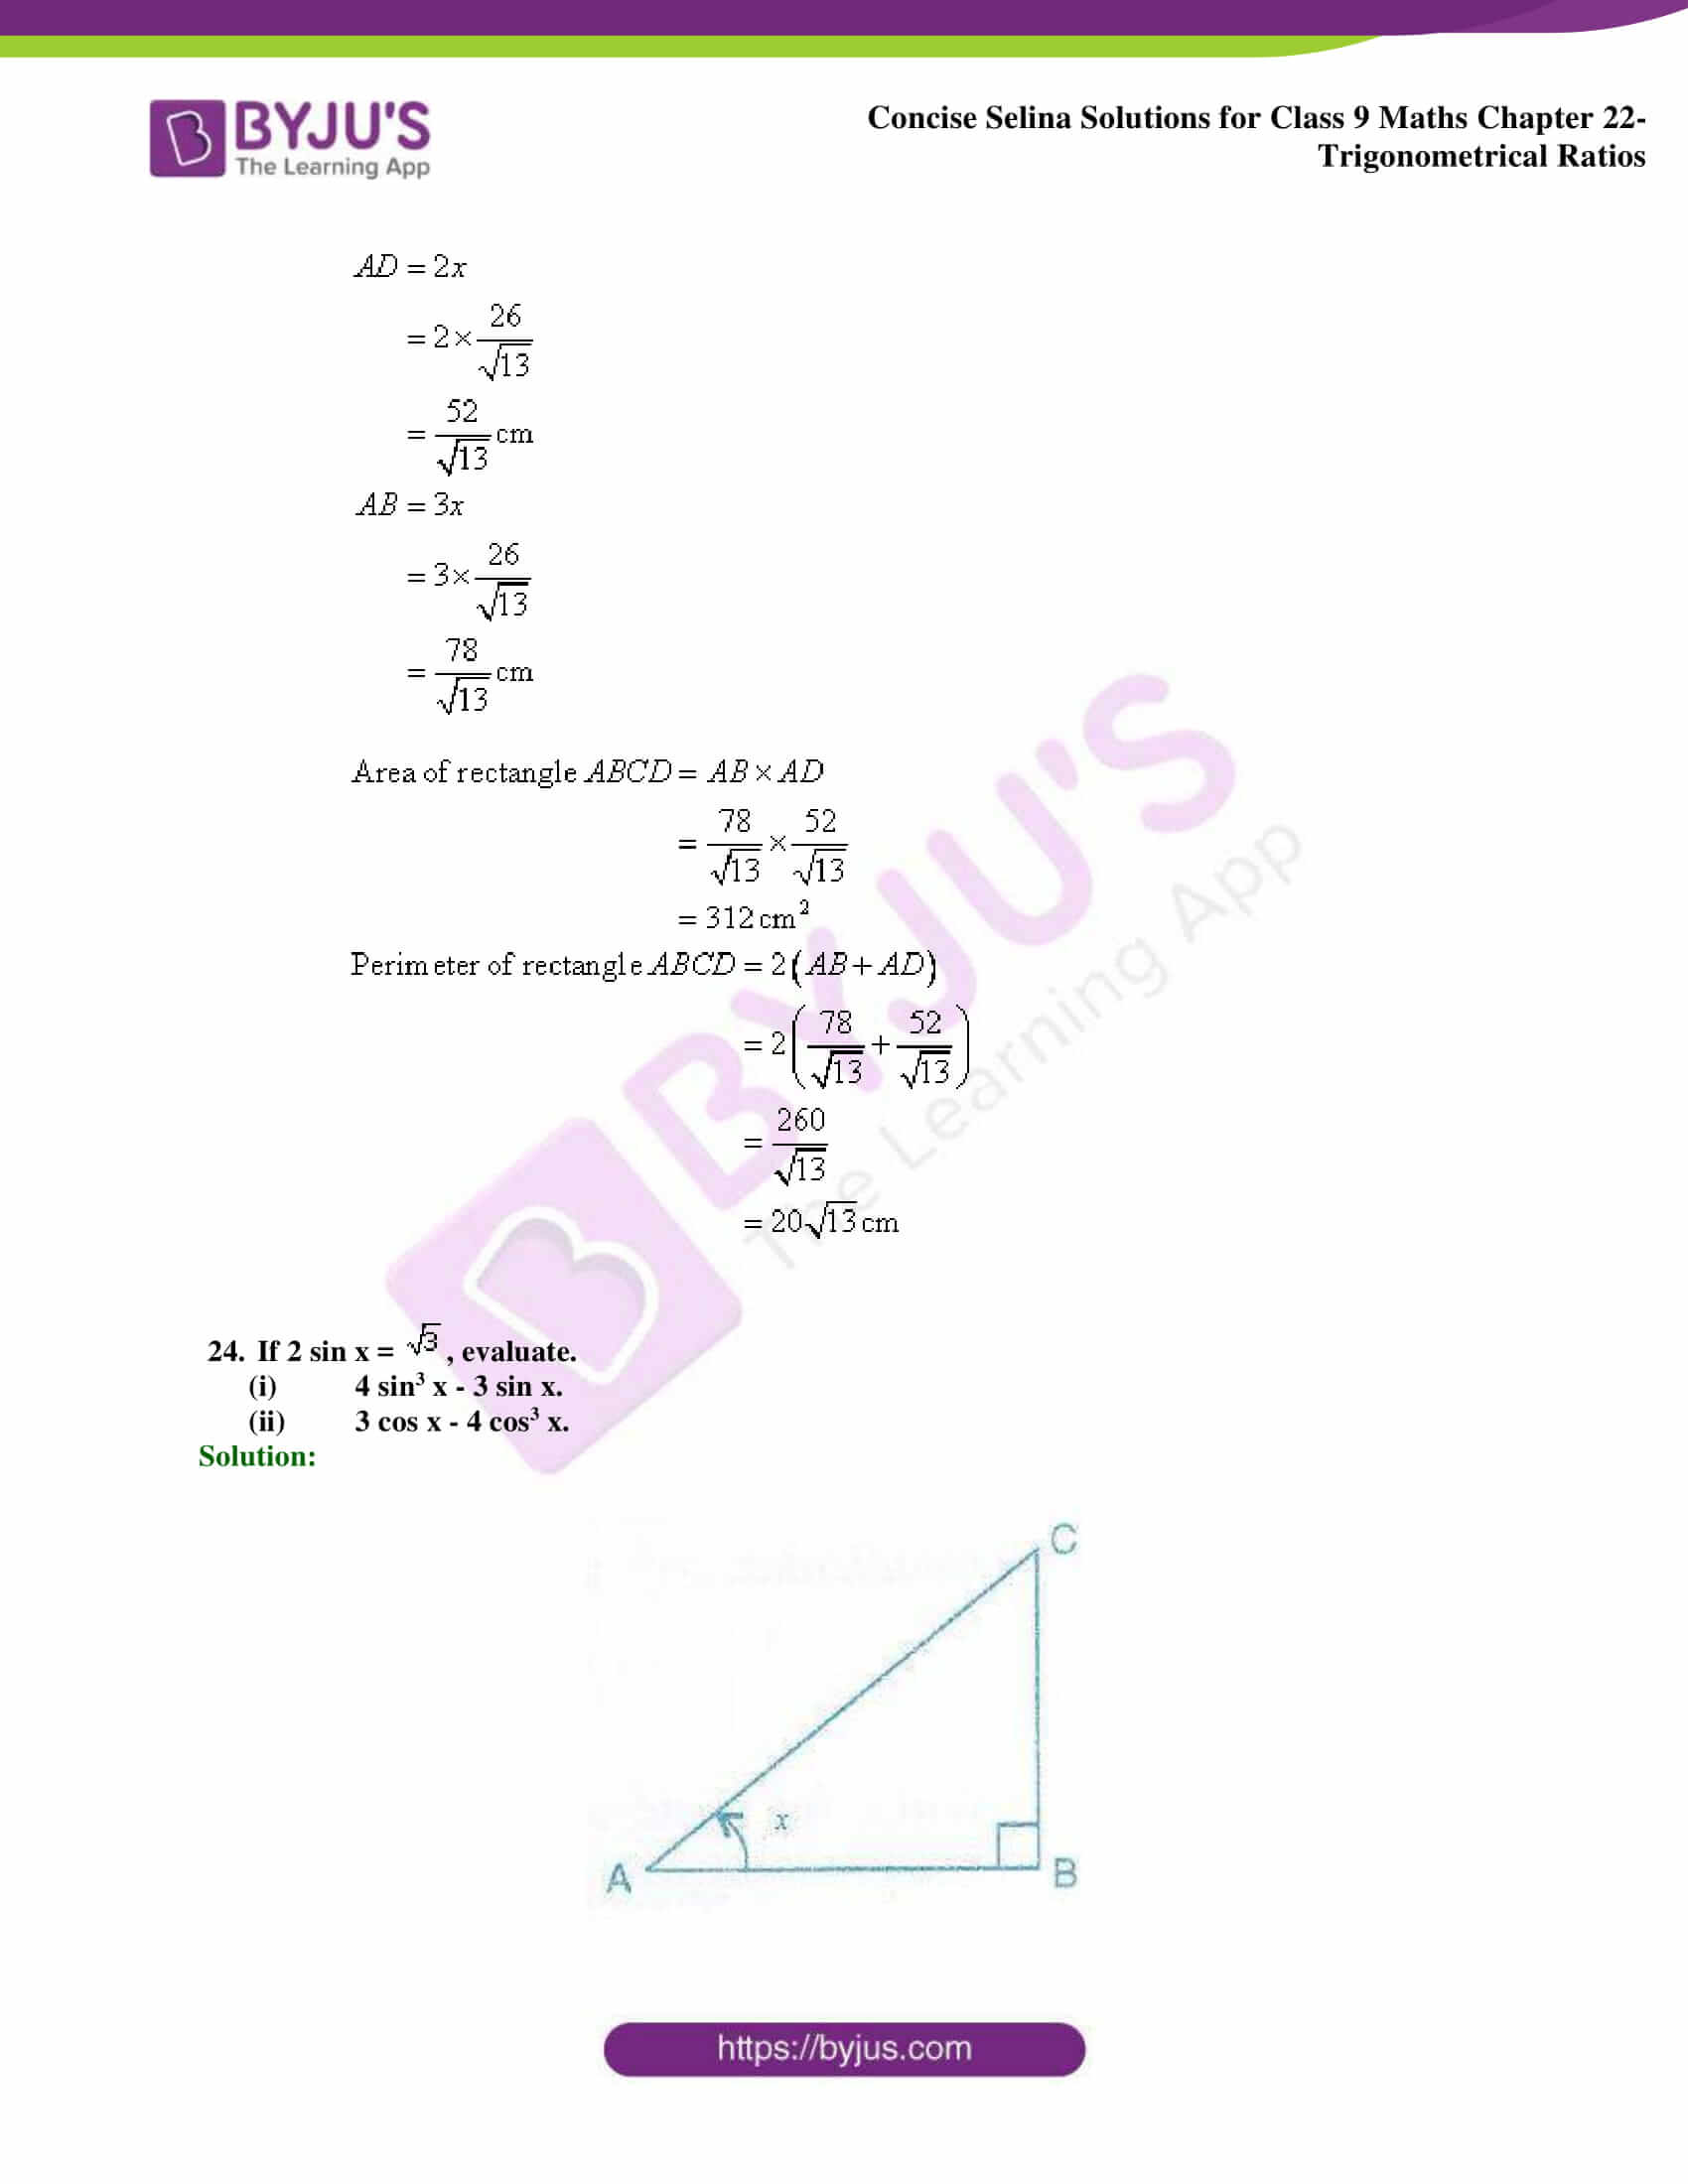 Concise Selina Solutions Class 9 Maths Chapter 22 Trigonometrical Ratios part 45